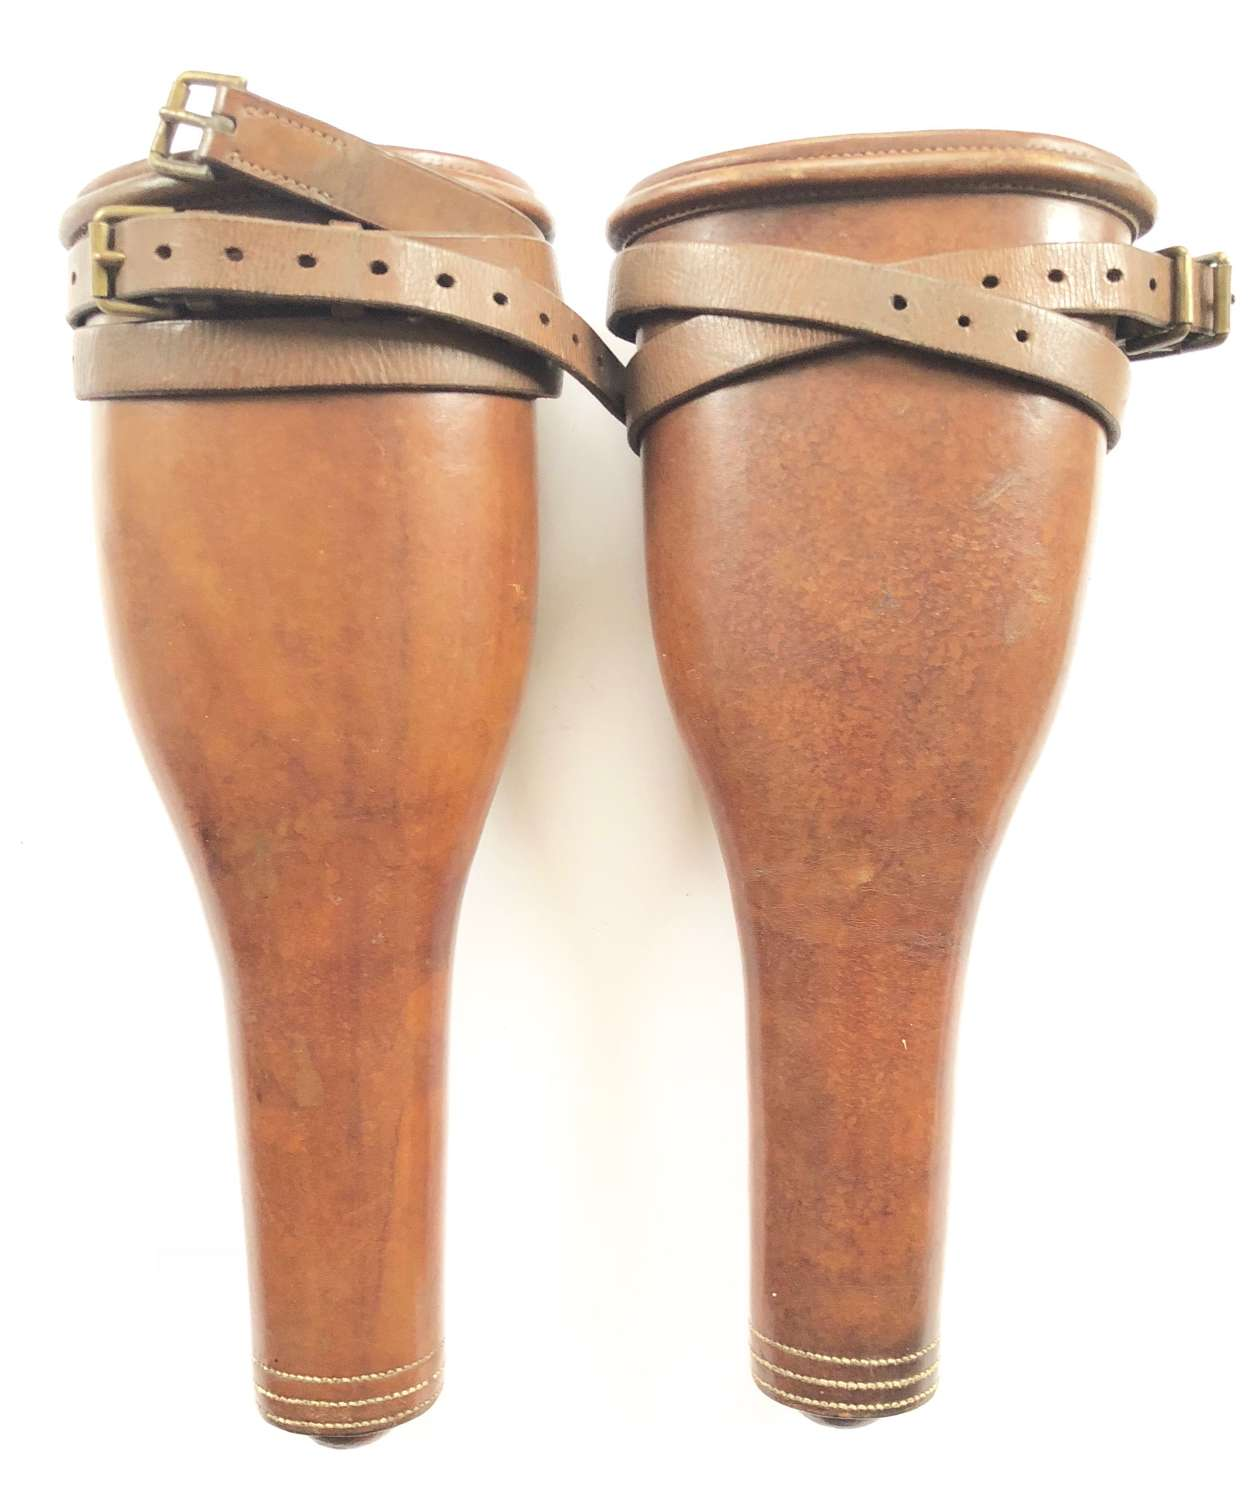 Victorian Military Polished Leather Cavalry Pistol Holsters.